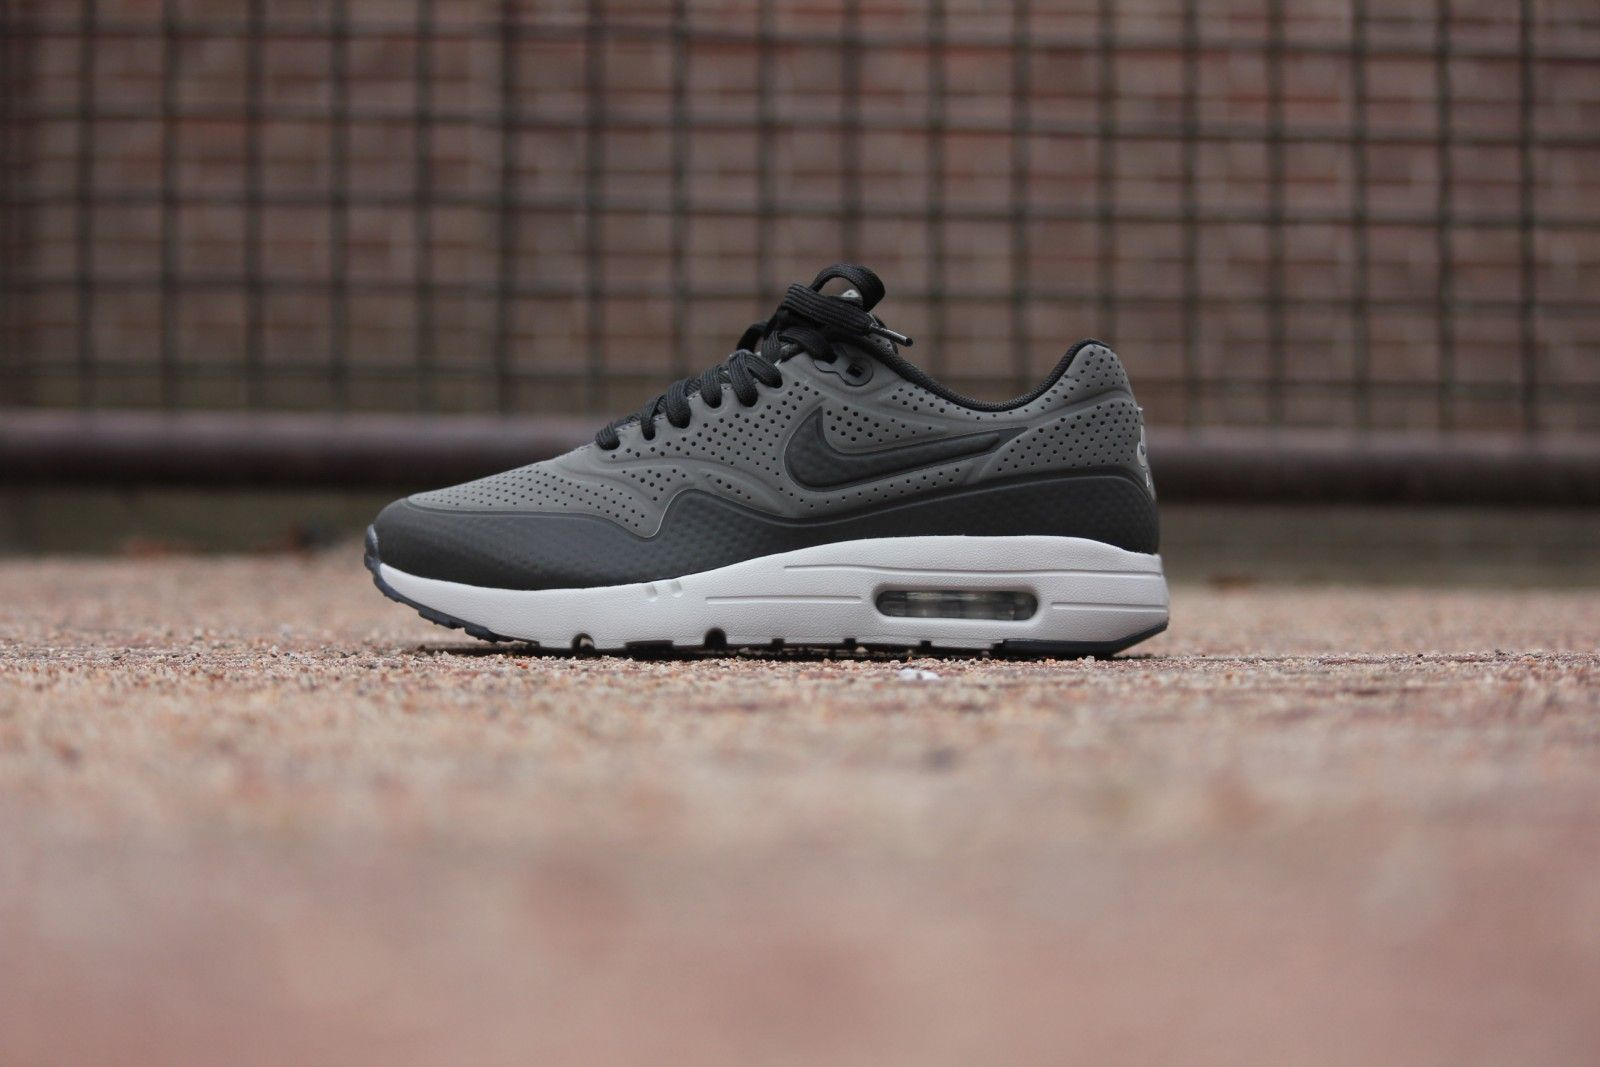 Nike Air Max 1 Ultra Moire Dark Grey/ Black-Fit Silver - 705297-